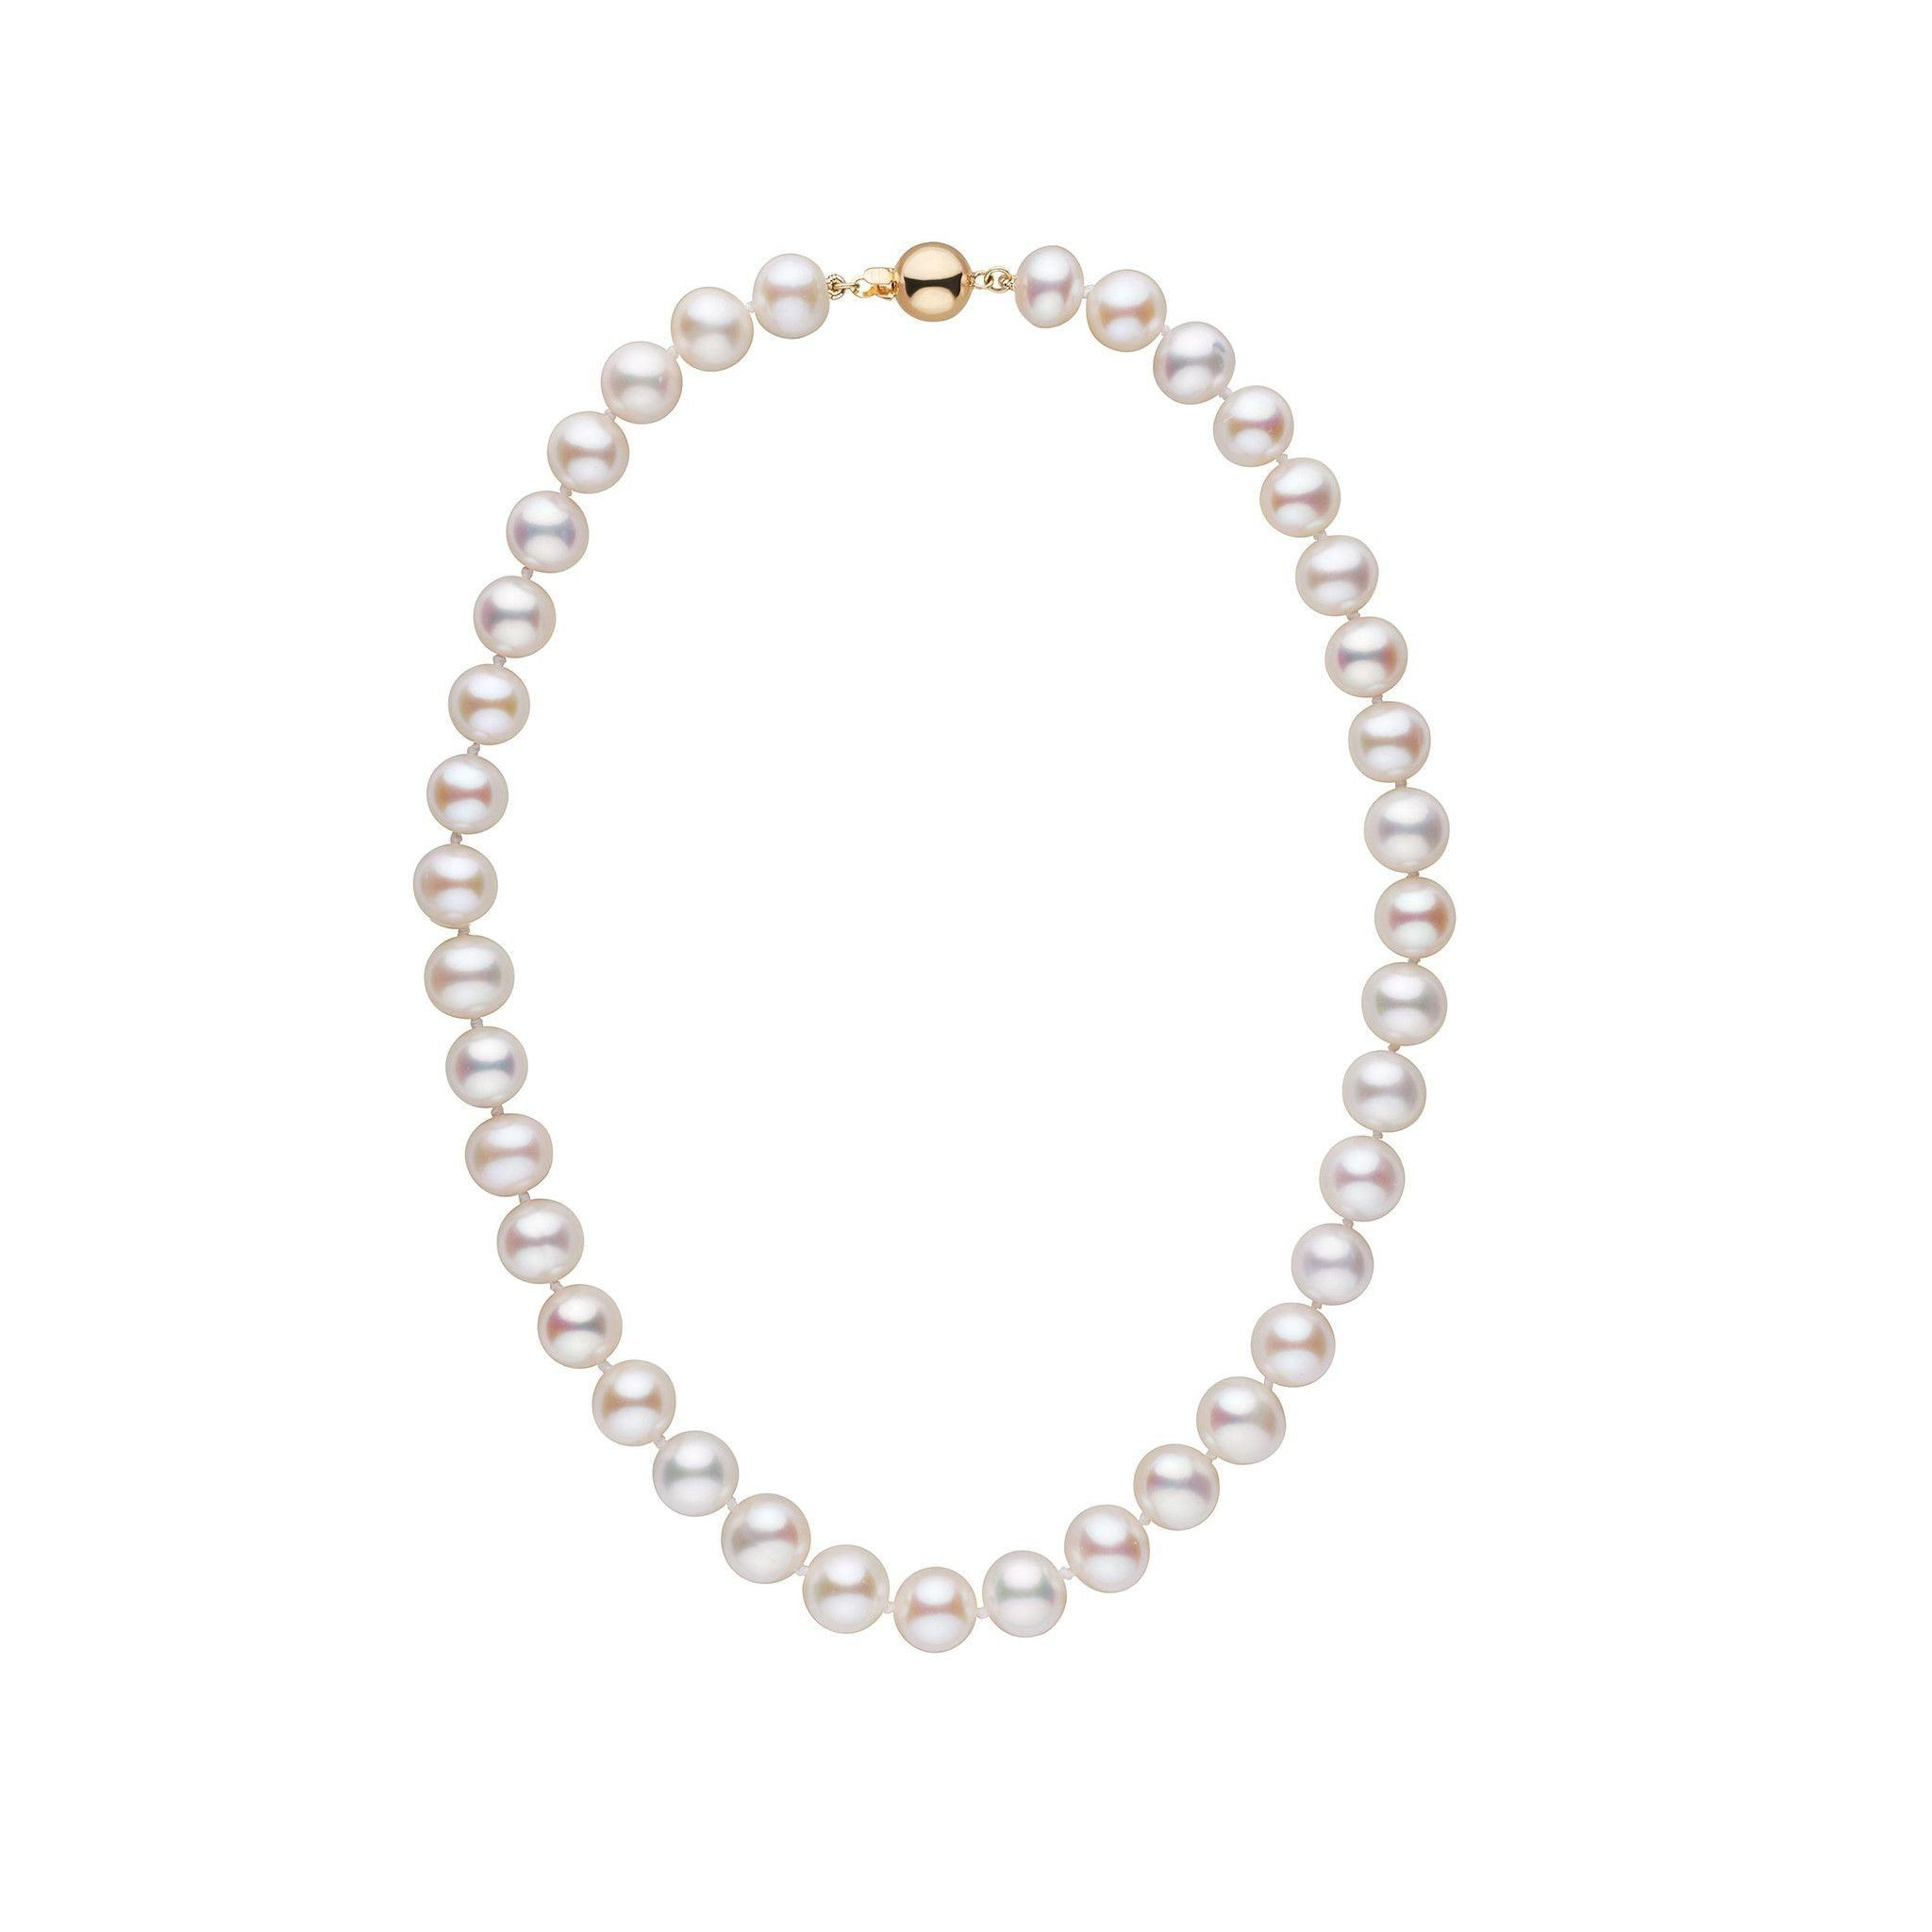 9.5-10.5 mm 16 inch AA+ White Freshwater Pearl Necklace